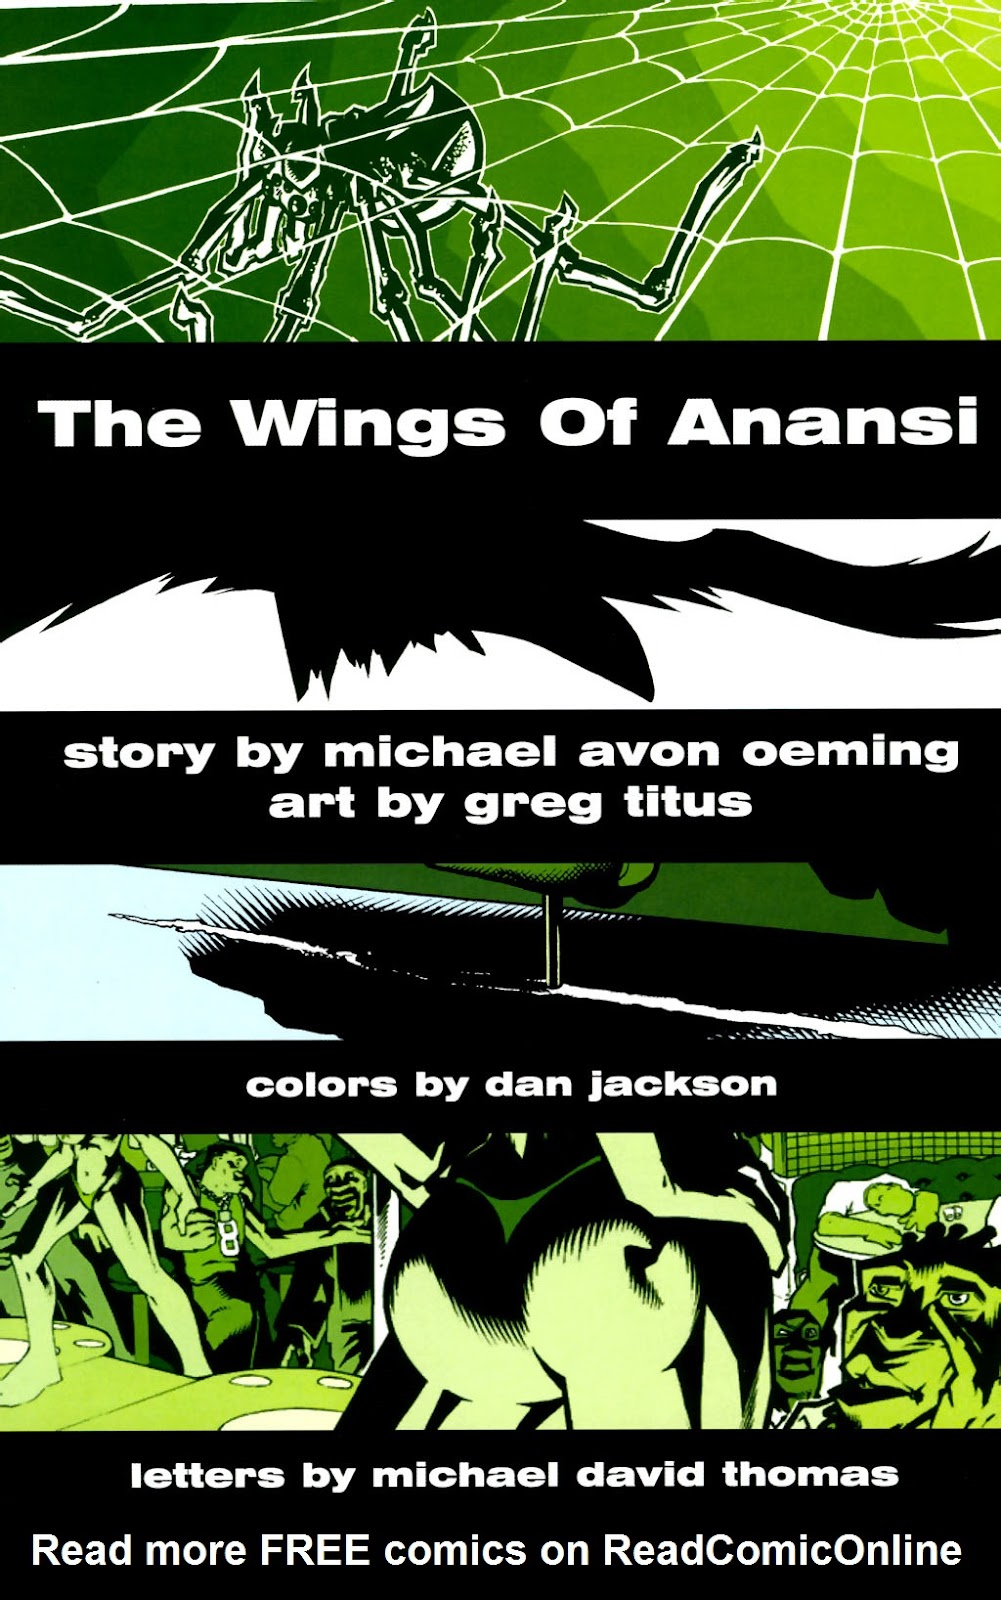 Read online The Wings Of Anansi comic -  Issue # Full - 5